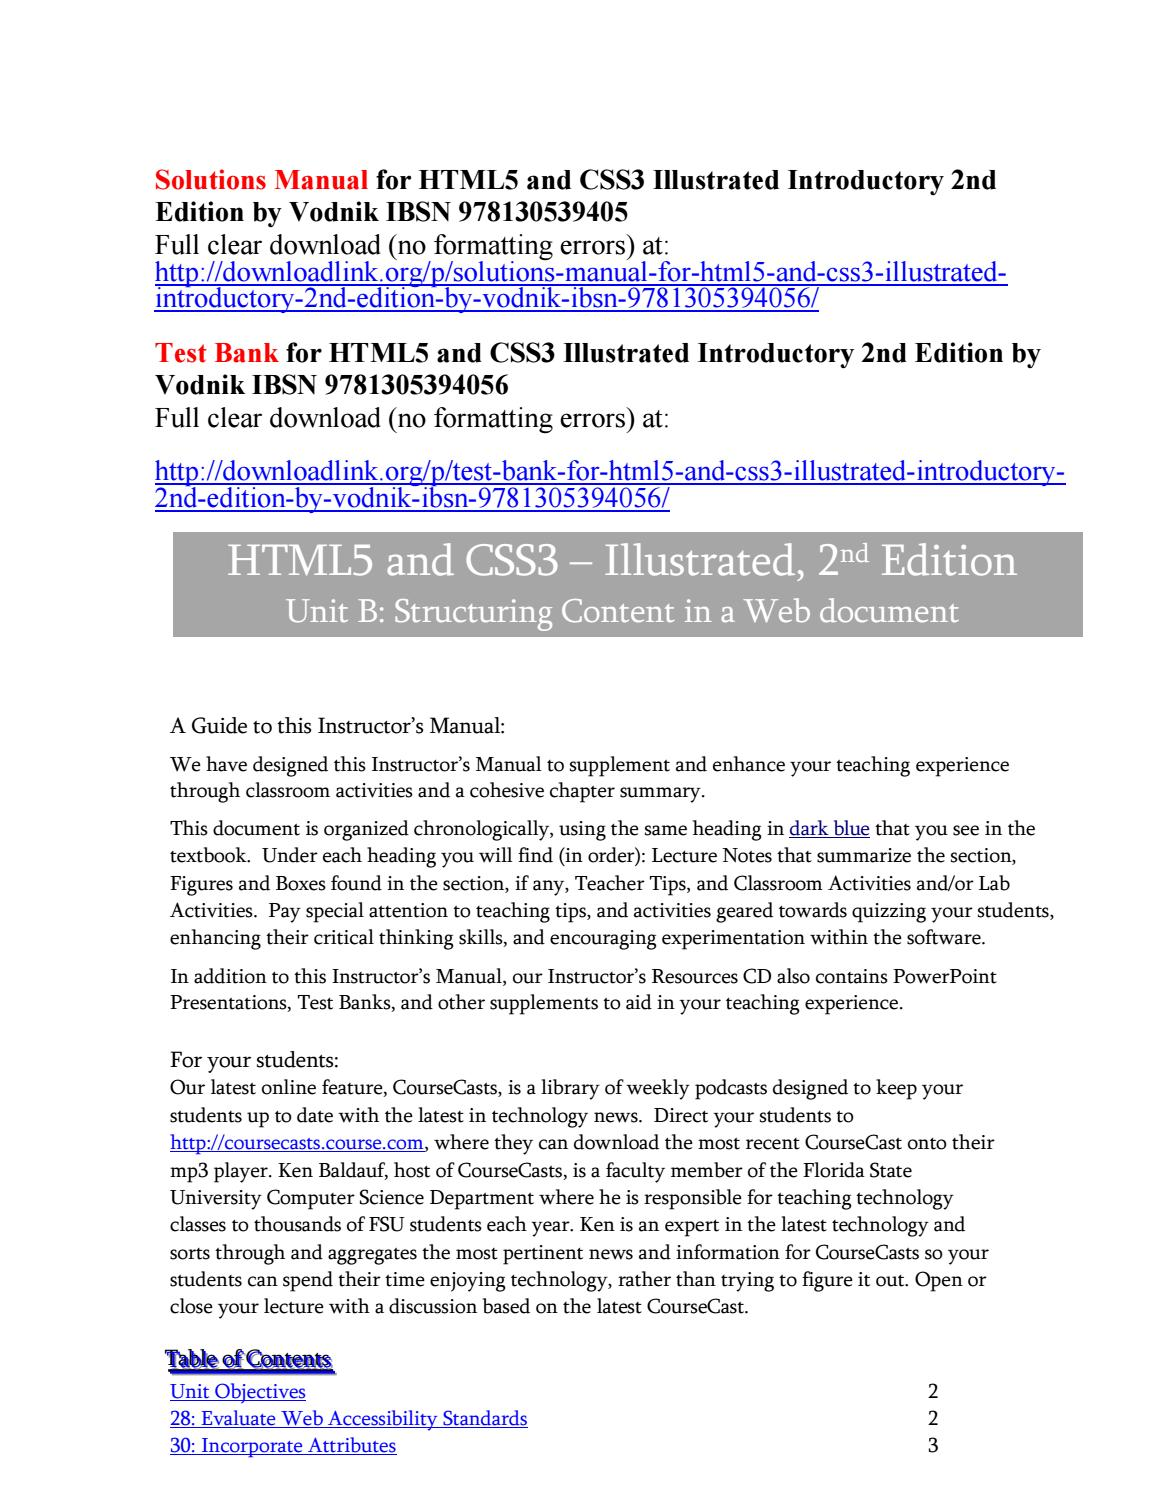 Solutions manual for html5 and css3 illustrated introductory 2nd edition by  vodnik ibsn 978130539405 by Vodnik7556 - issuu